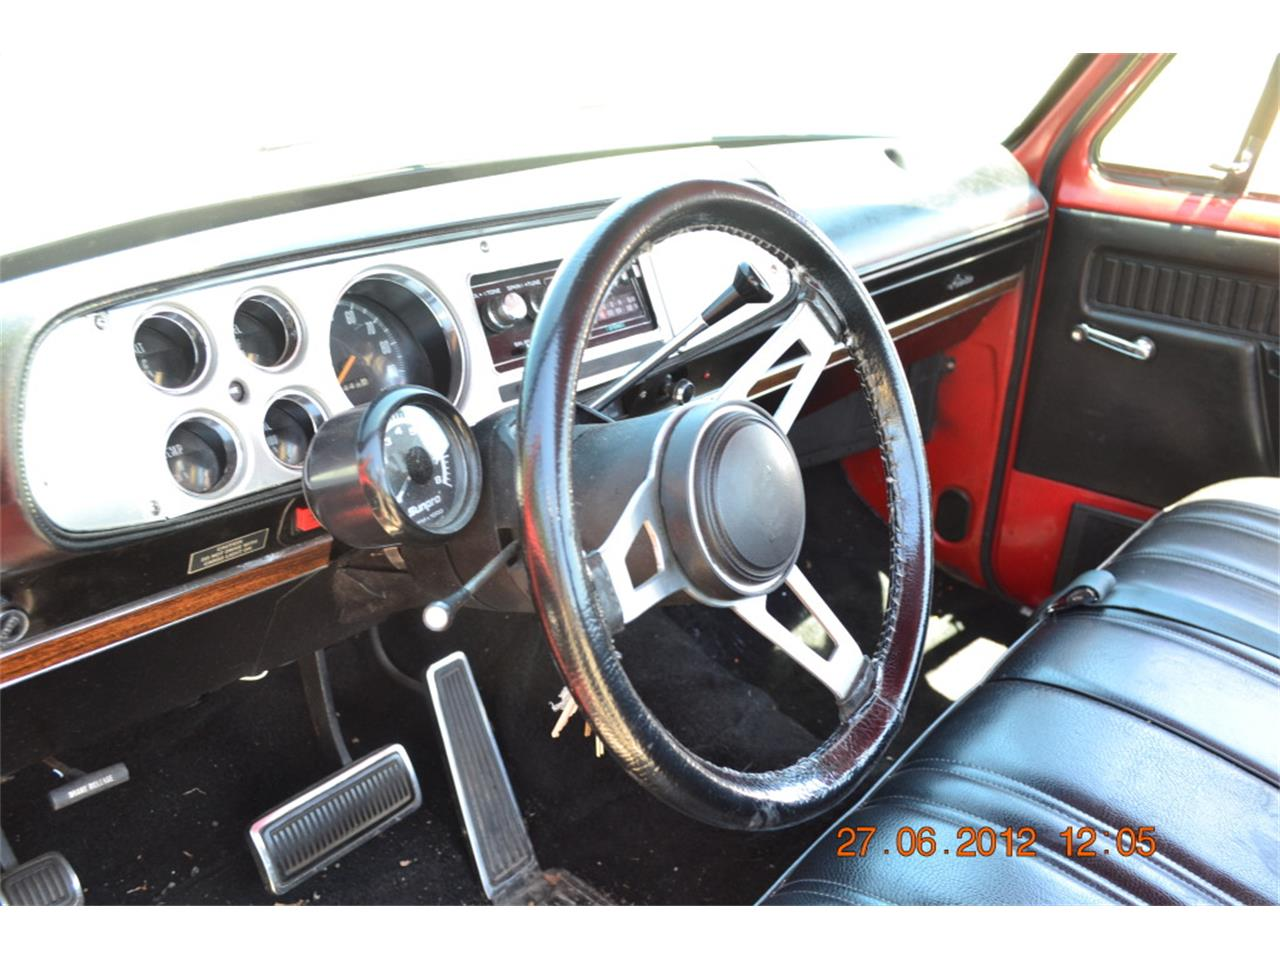 Large Picture of '79 Dodge Little Red Express - $19,950.00 Offered by a Private Seller - EHSU